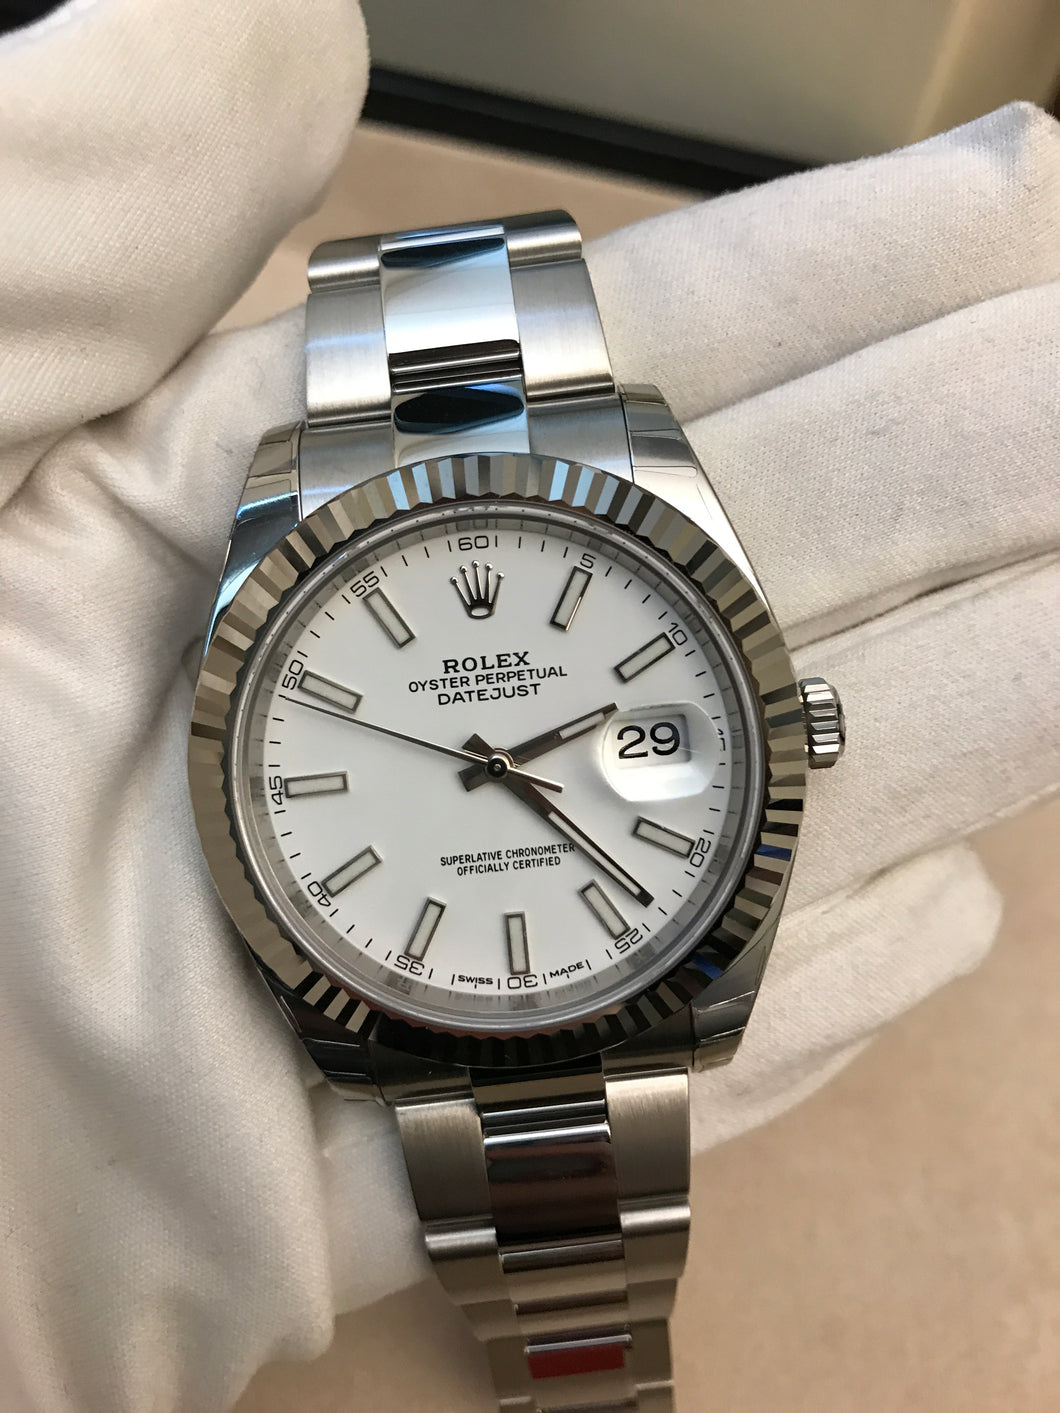 Rolex Datejust 41mm Stainless Steel 904L Fluted Bezel White Index Dial on Oyster band